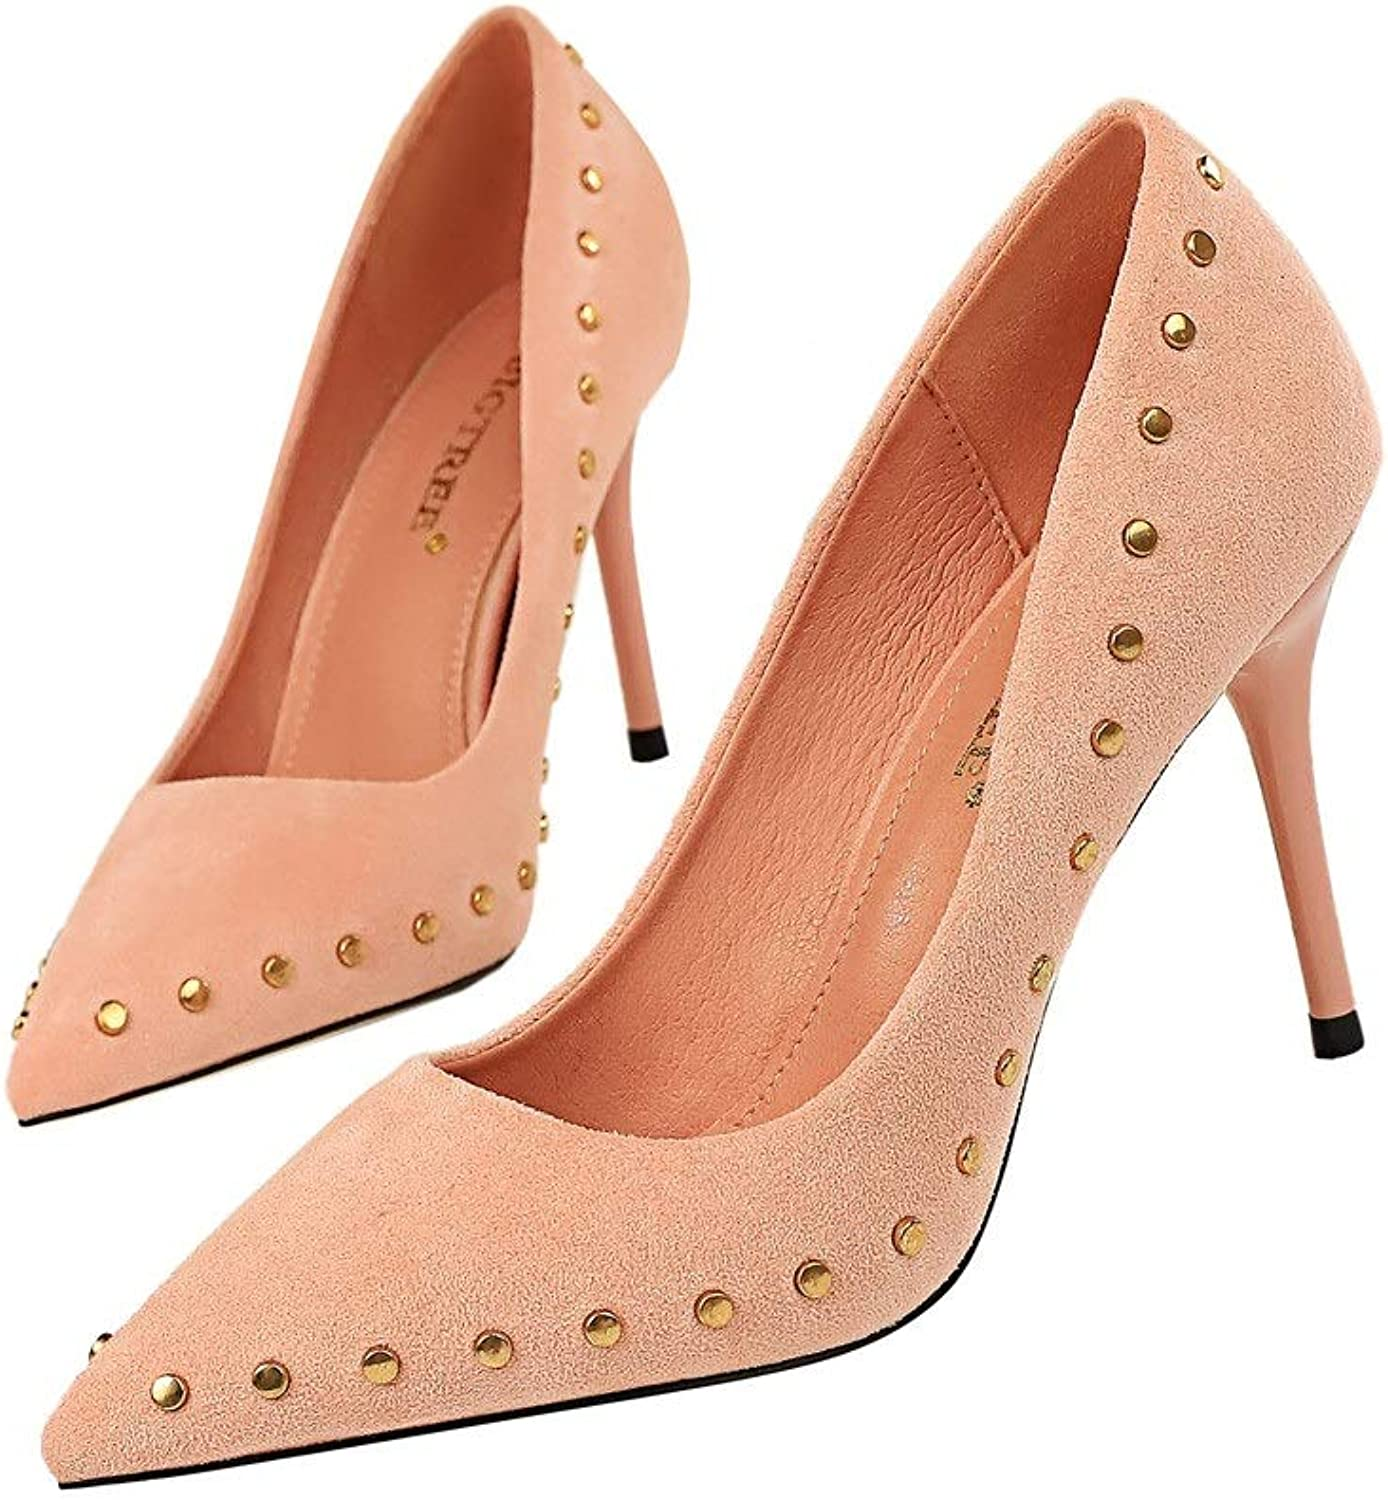 Pointed Stiletto Closure High Heels Sexy Vintage Suede Studded shoes For Wedding Party Formal Occasions (9Cm)